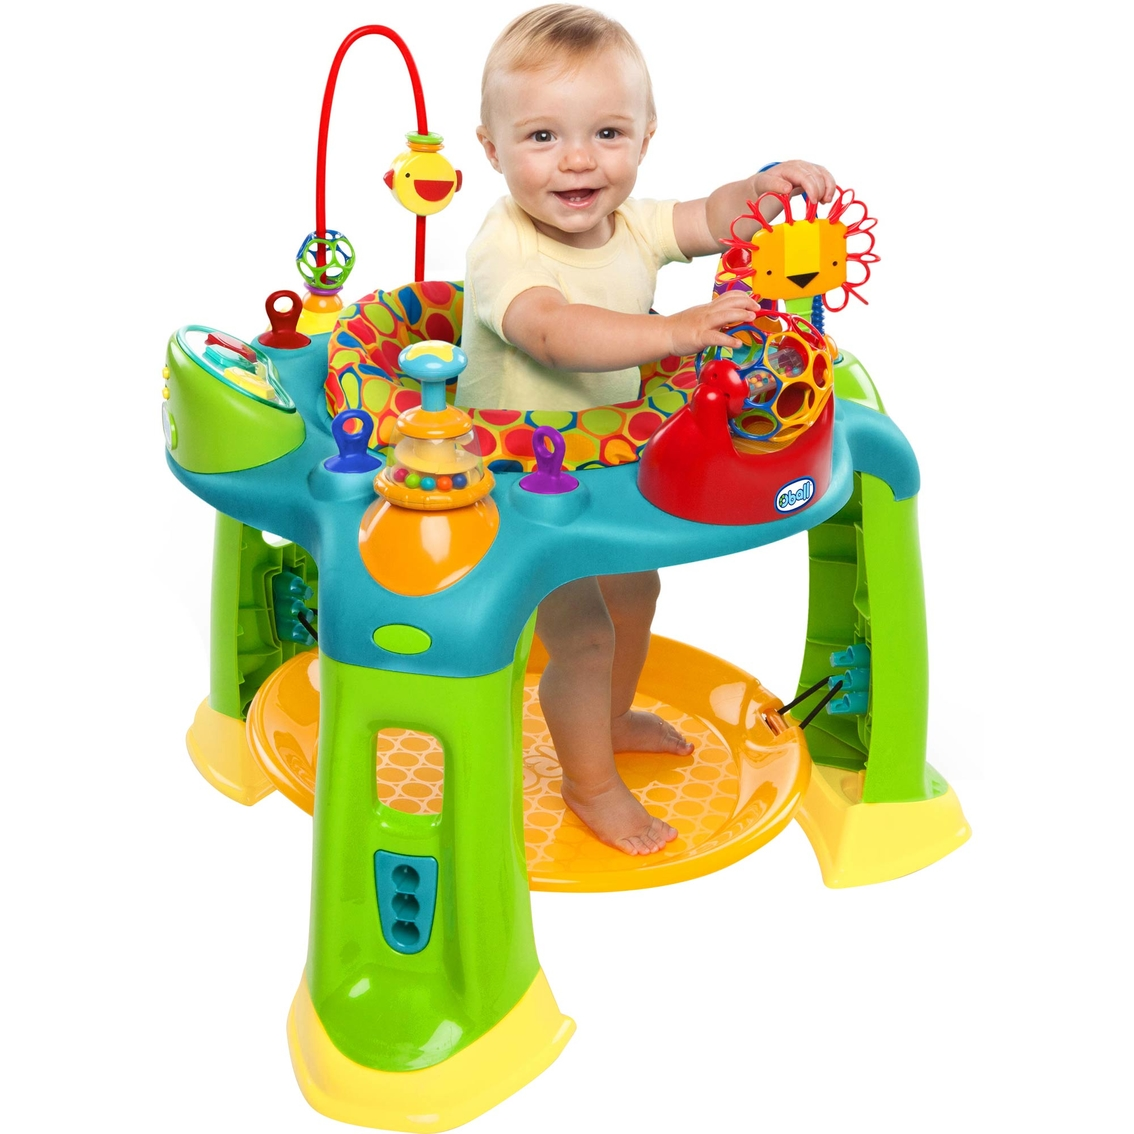 Picture of: Kids Ii Oball Bounce O Bunch Activity Center Activity Centers Walkers Baby Toys Shop The Exchange